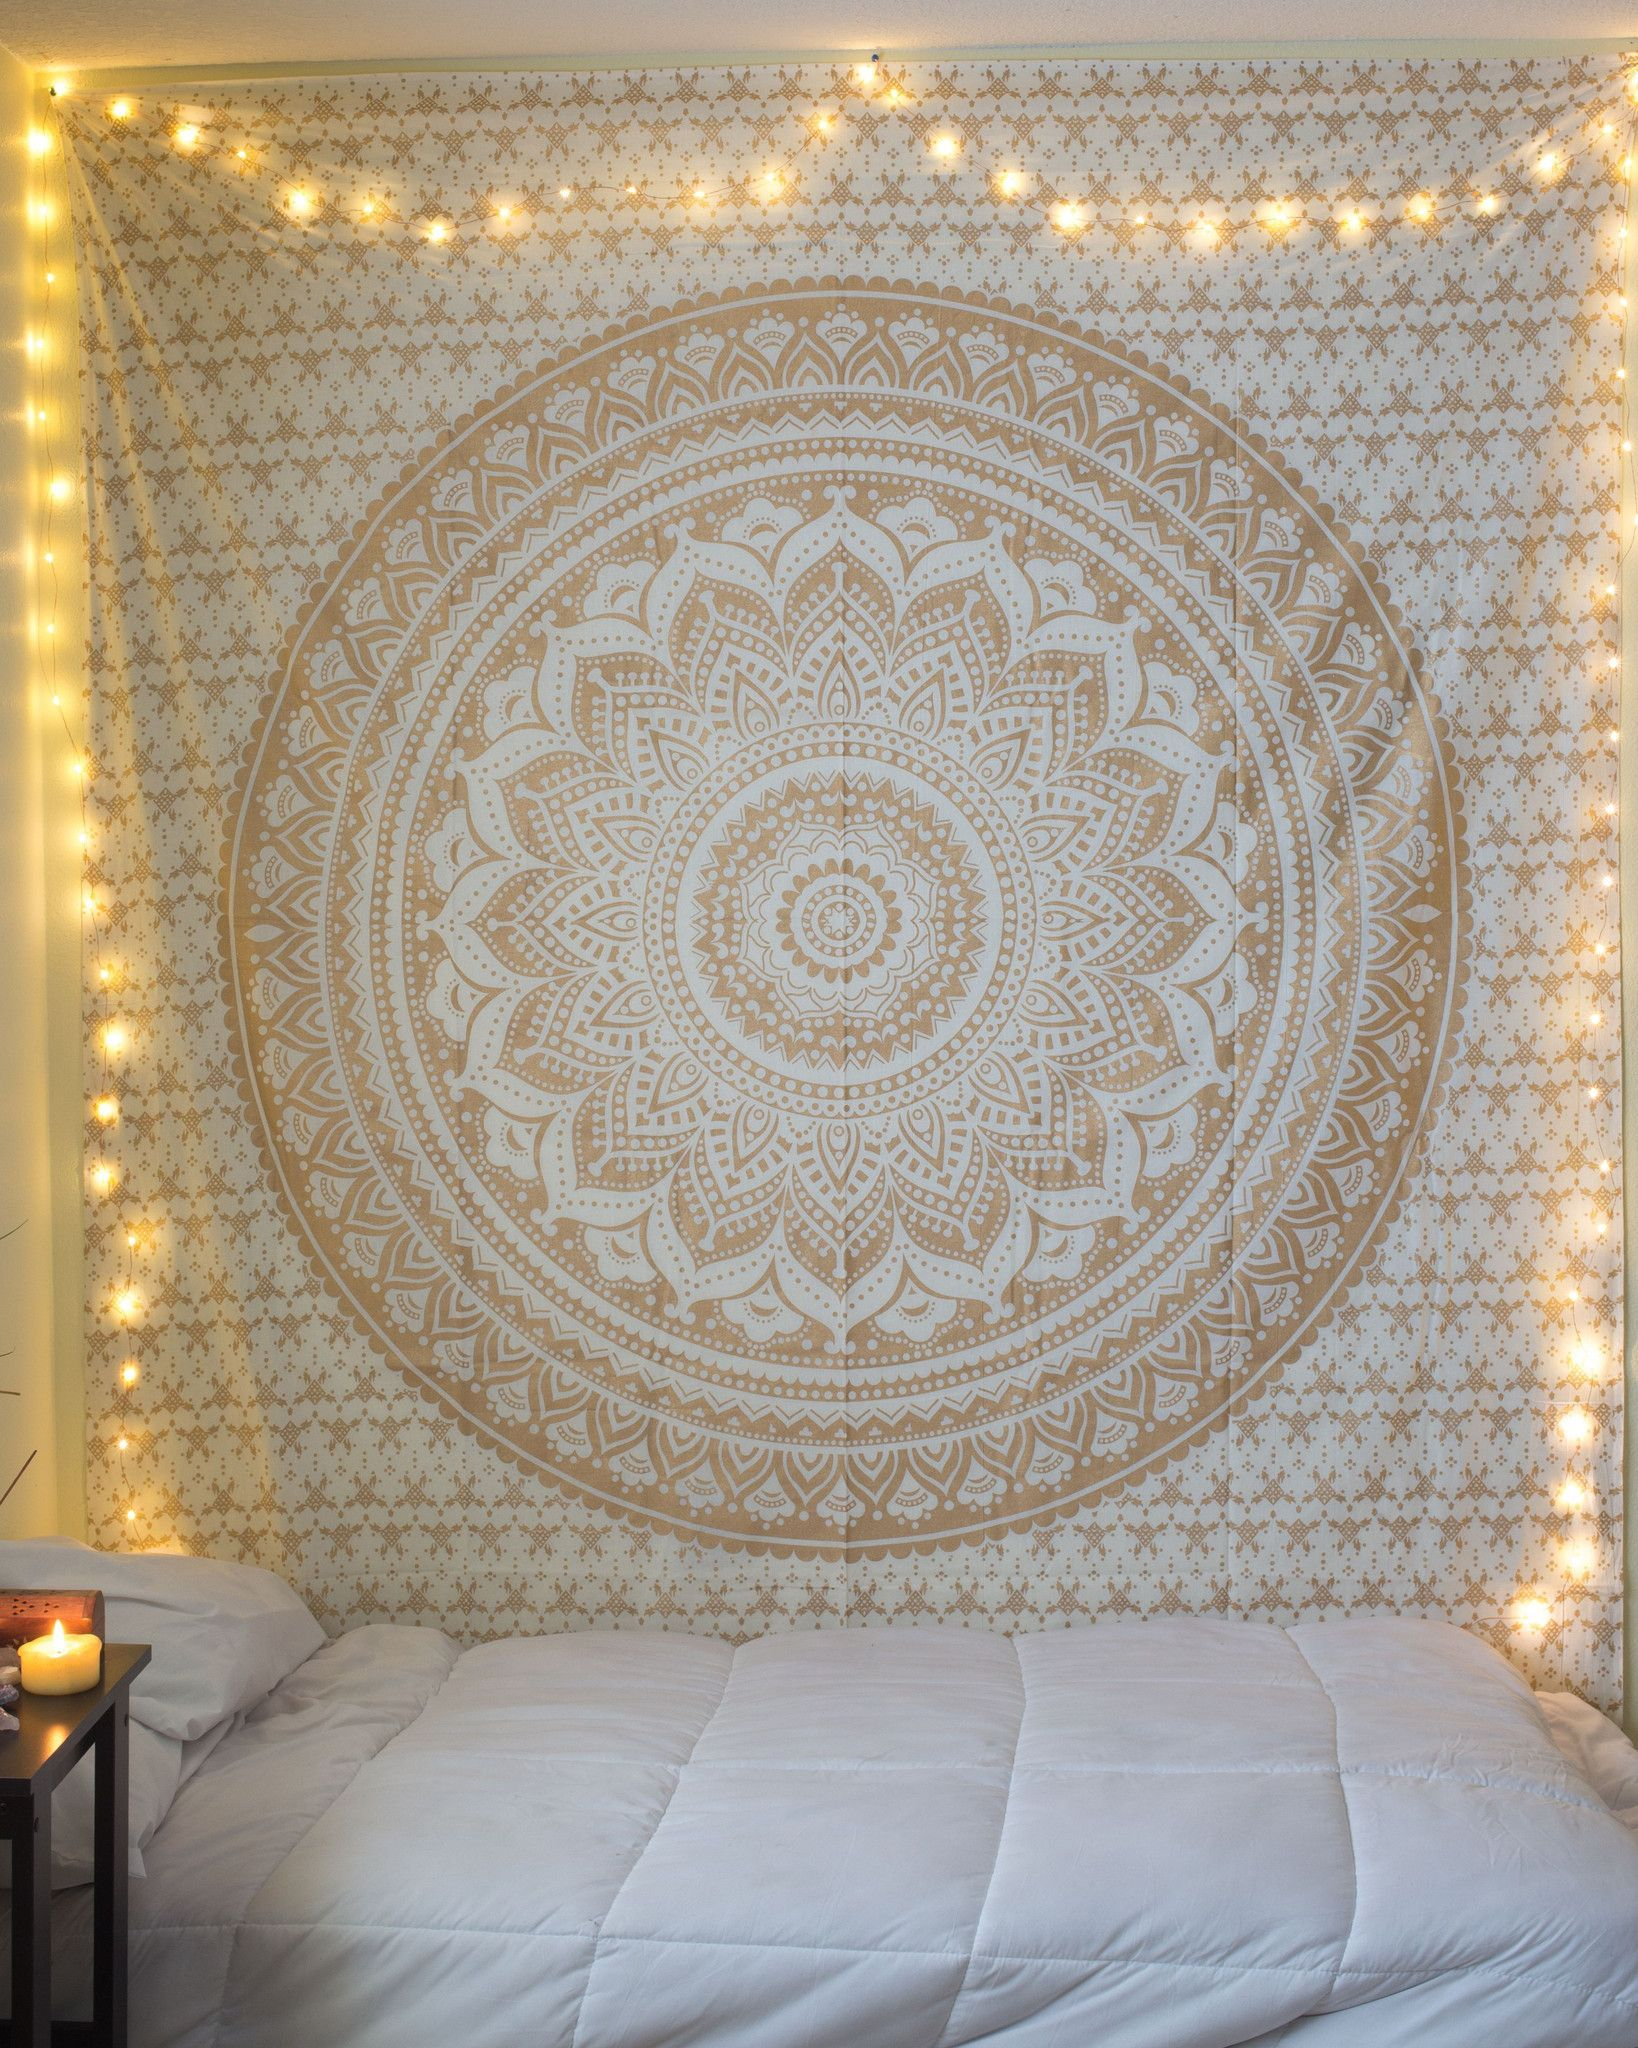 Best 25 tapestry ideas on pinterest tapestries college for Hanging bedroom